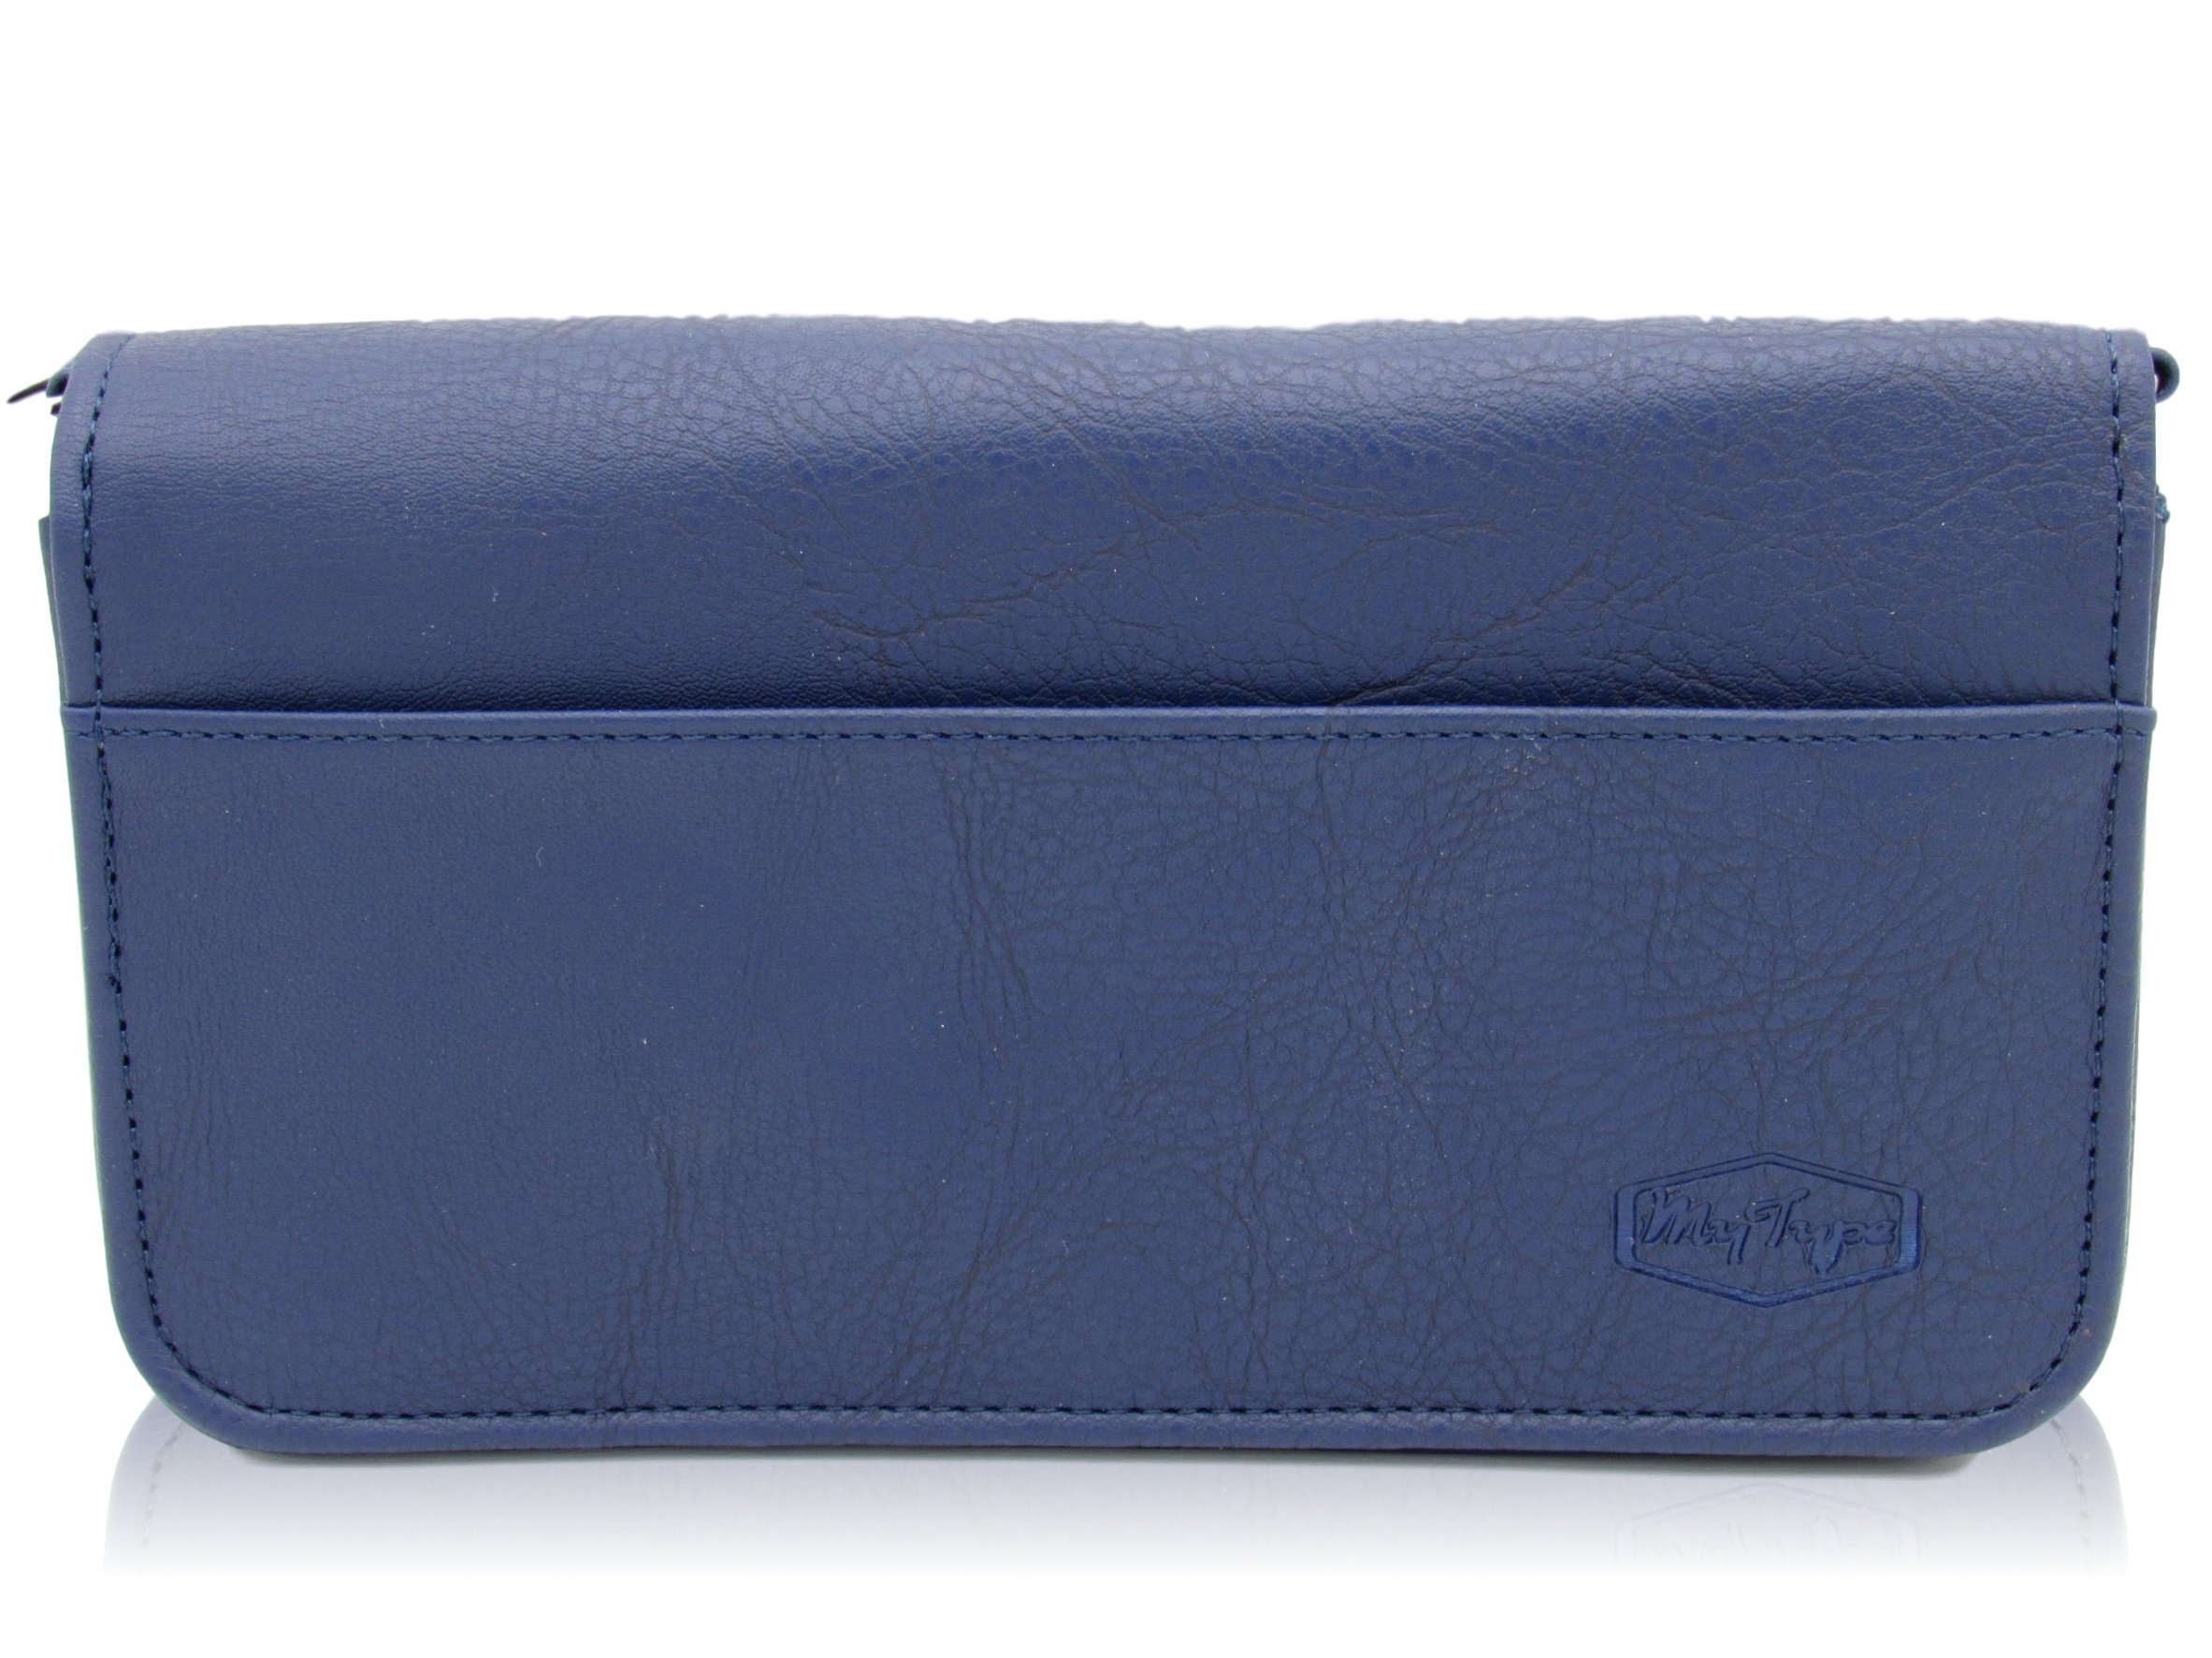 MyType Diabetic Glucose Monitoring Supply Purse or Clutch - Stores all your Diabetes Supplies (Blue)